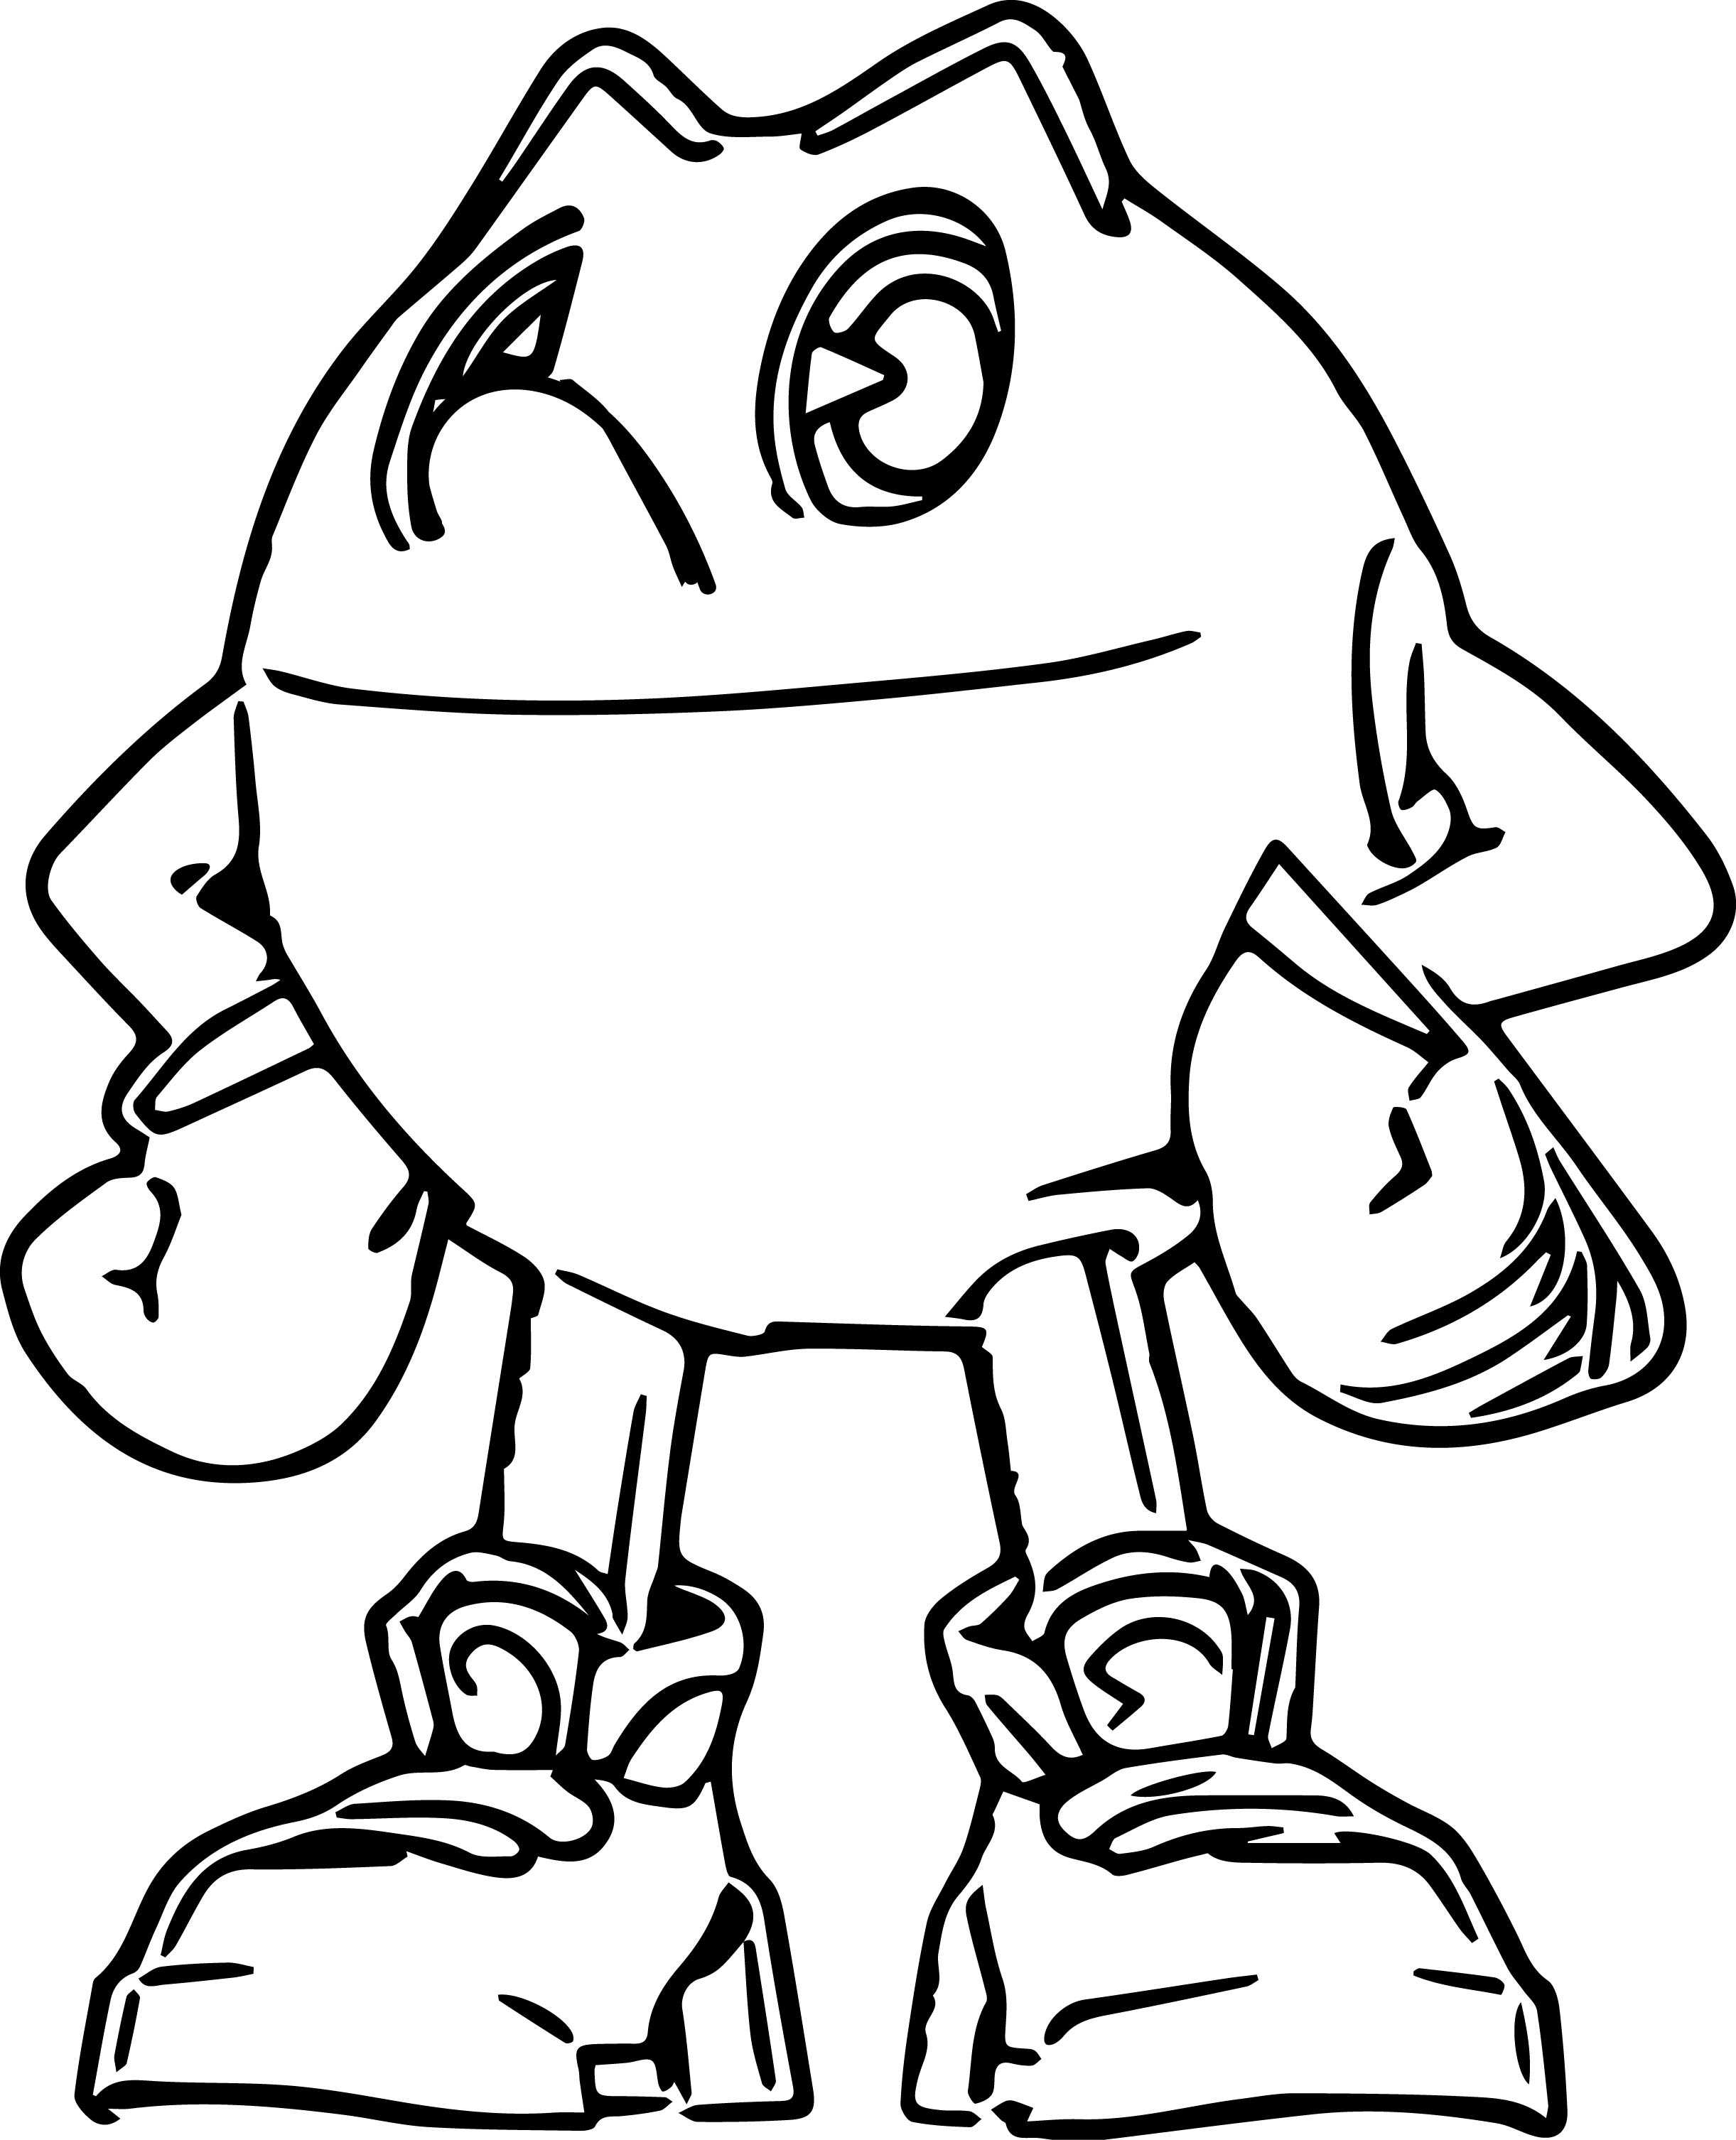 2443x3012 Huge Gift Pacman Coloring Pages Pac Man Printable Image